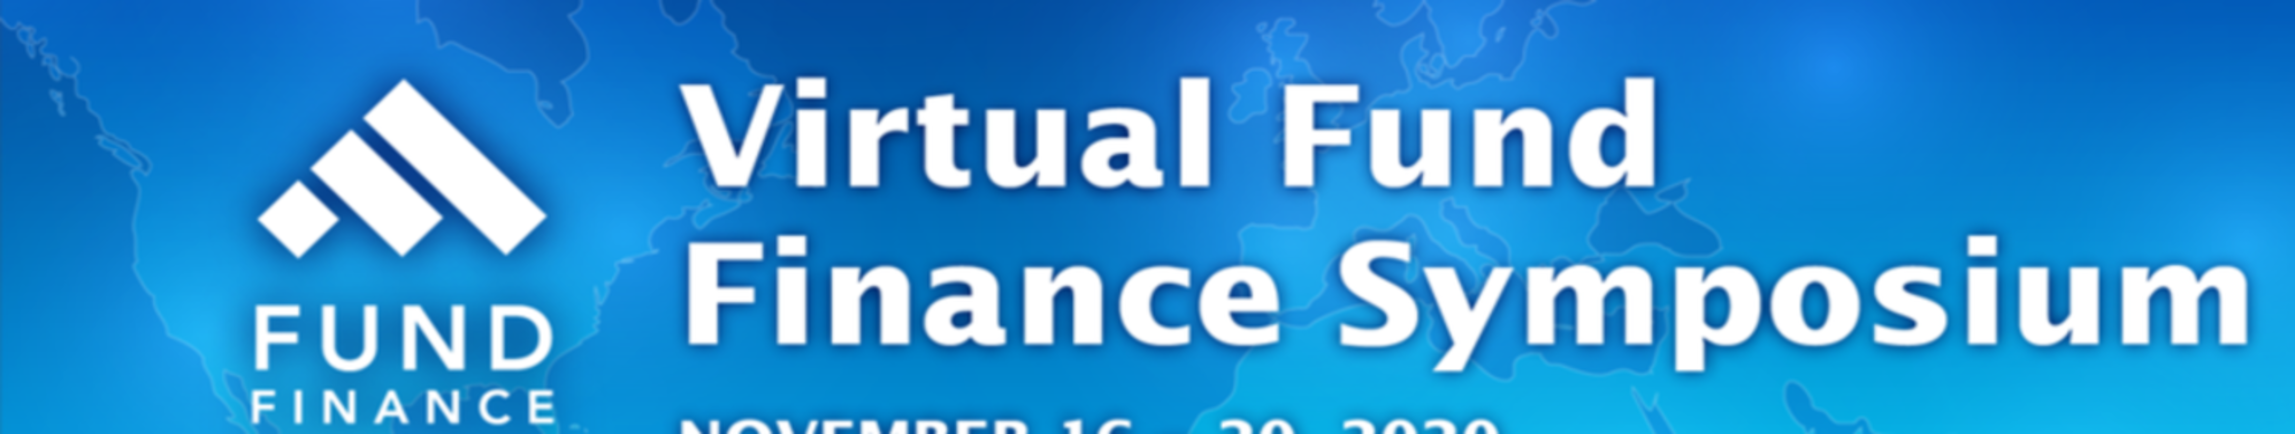 2020 Virtual Fund Finance Symposium